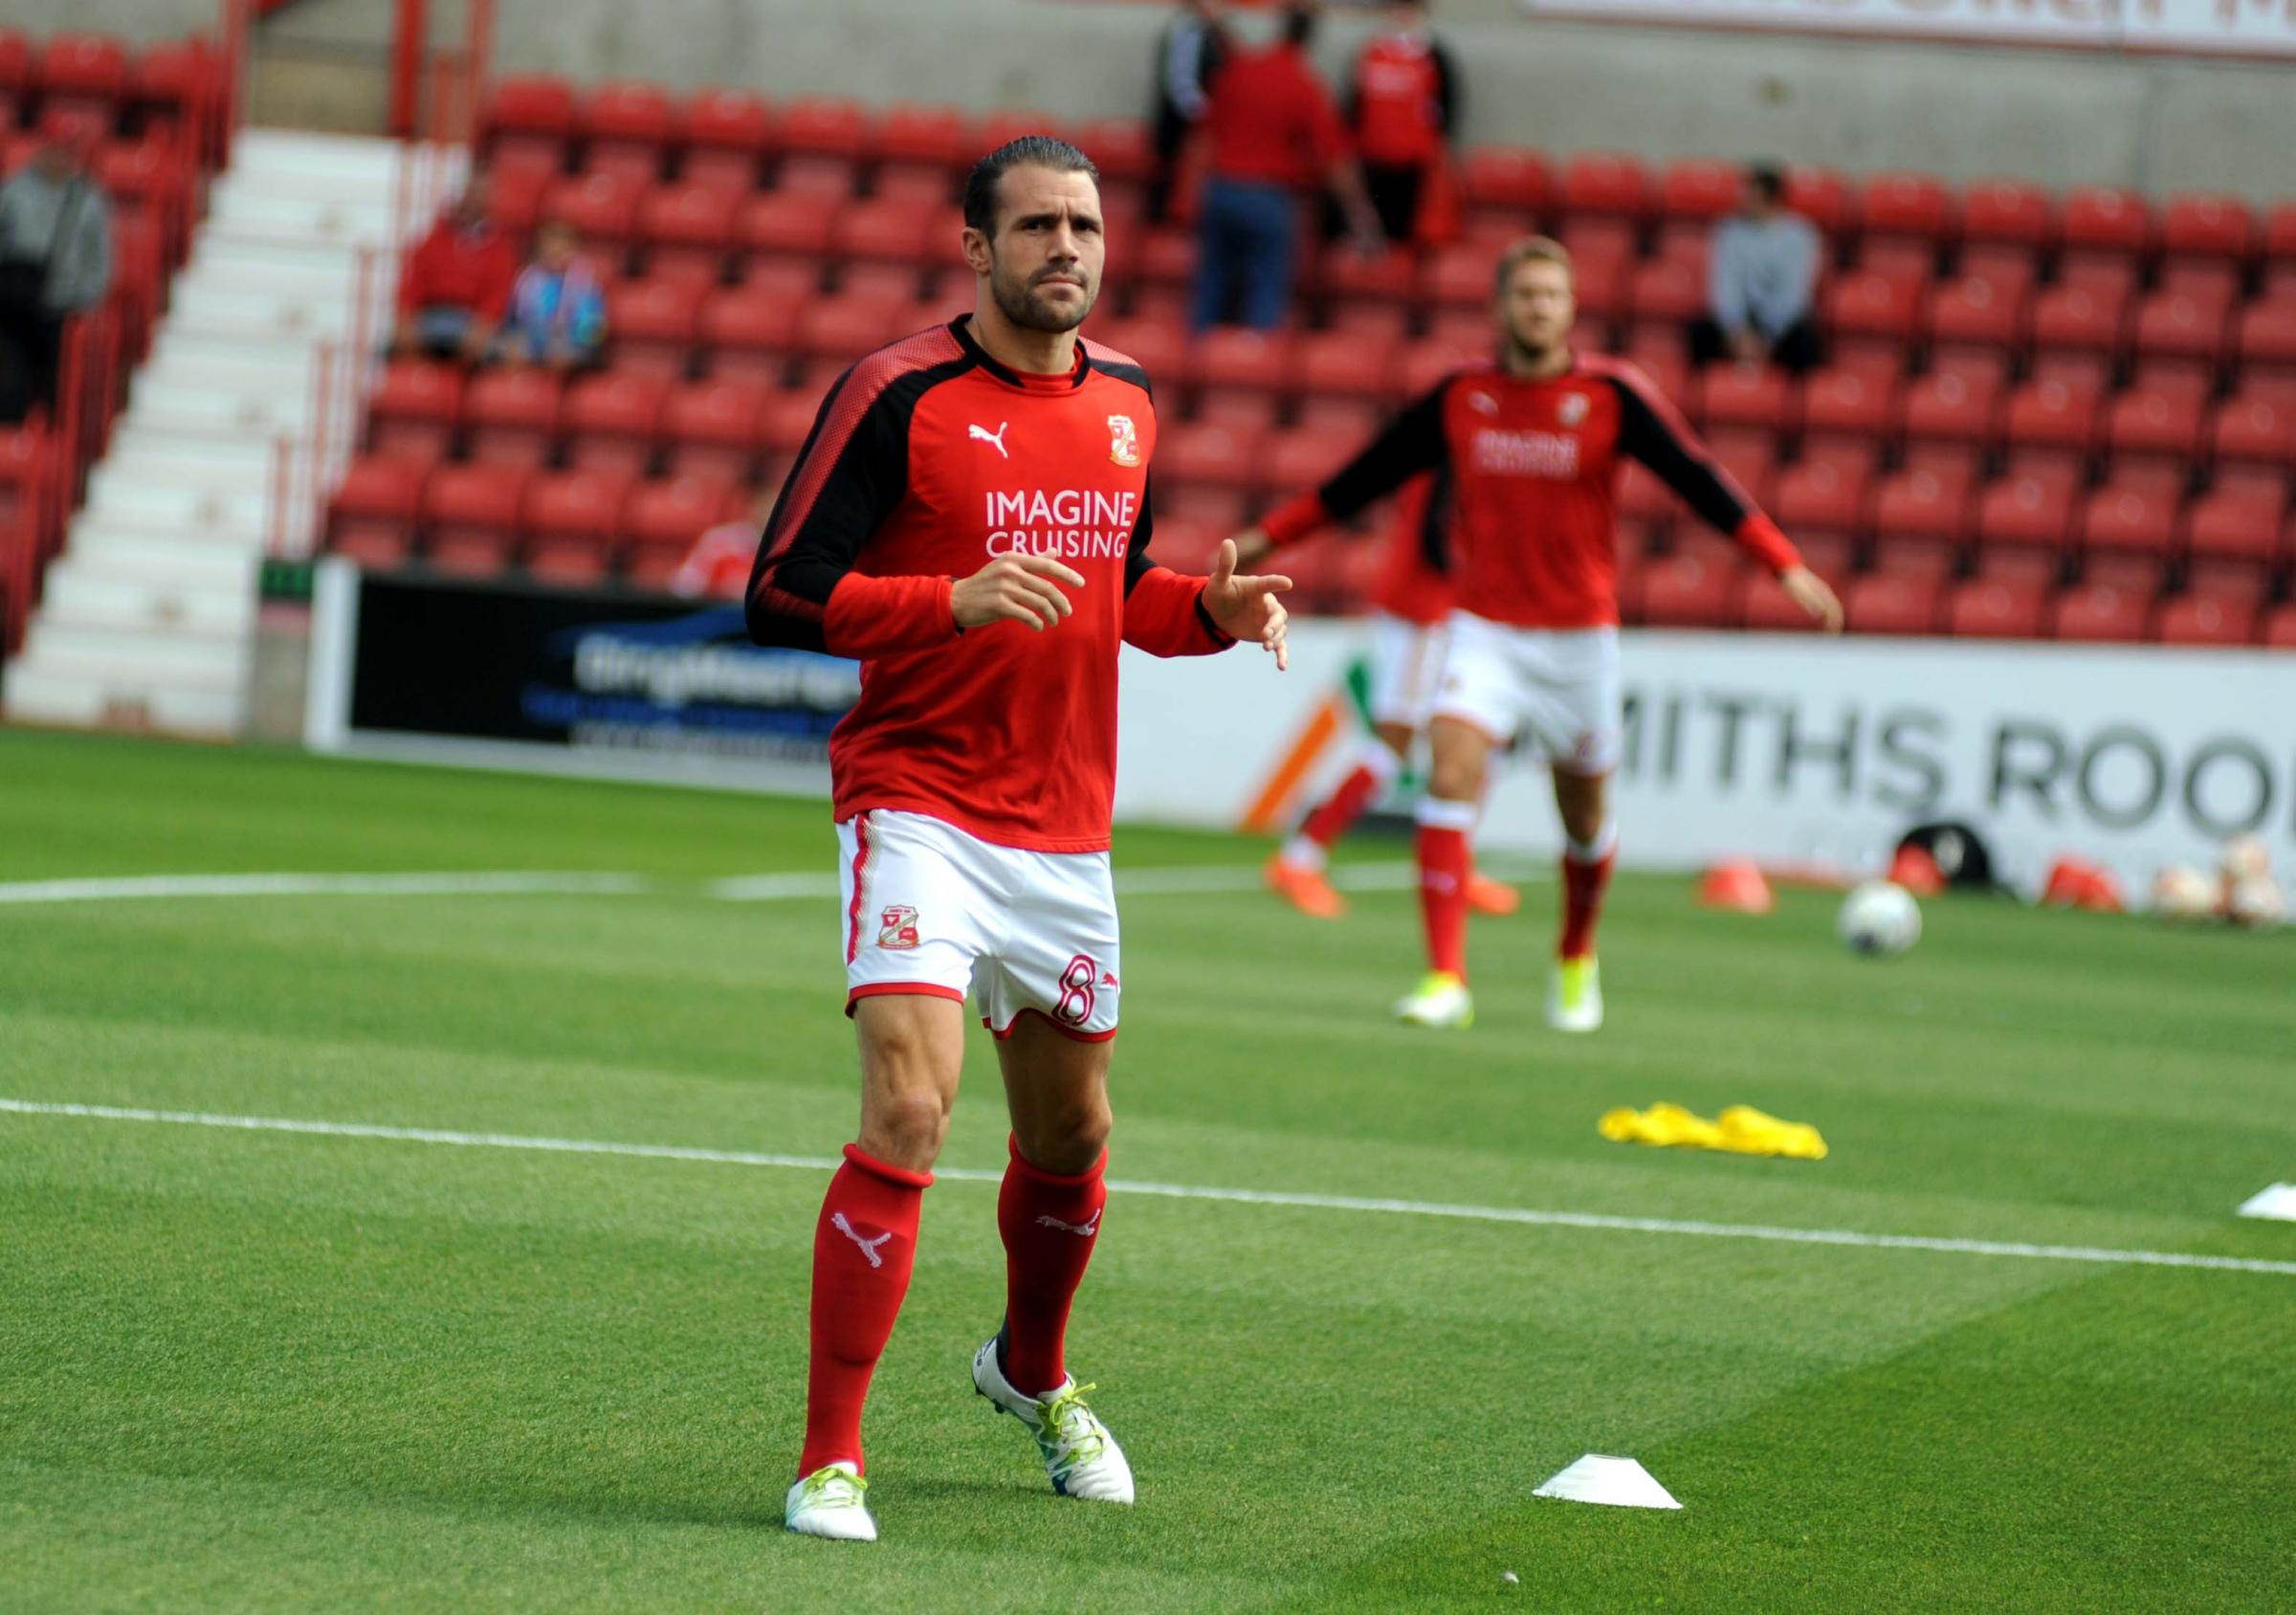 Midfielder James Dunne has appeared in 18 of Swindon Town's 20 matches in all competitions since joining the club over the summer